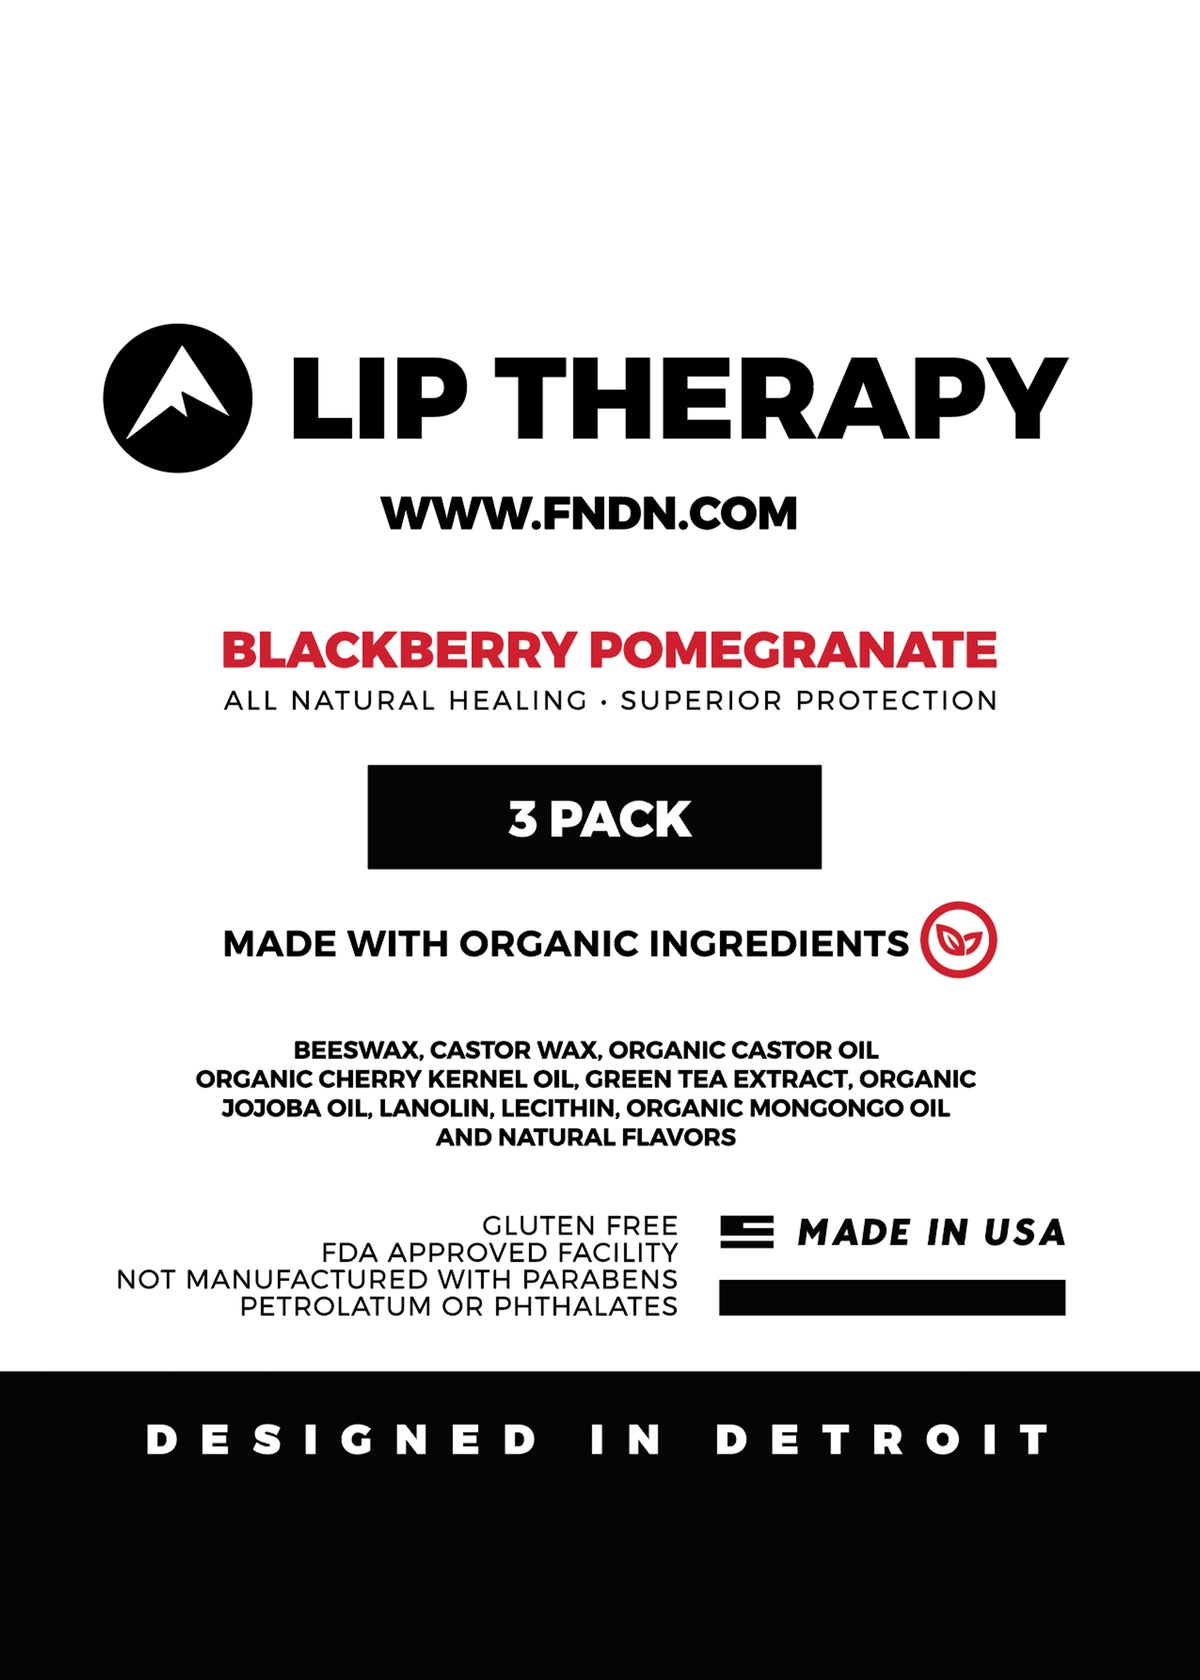 FNDN Lip Therapy - Blackberry Pomegranate / 3-Pack